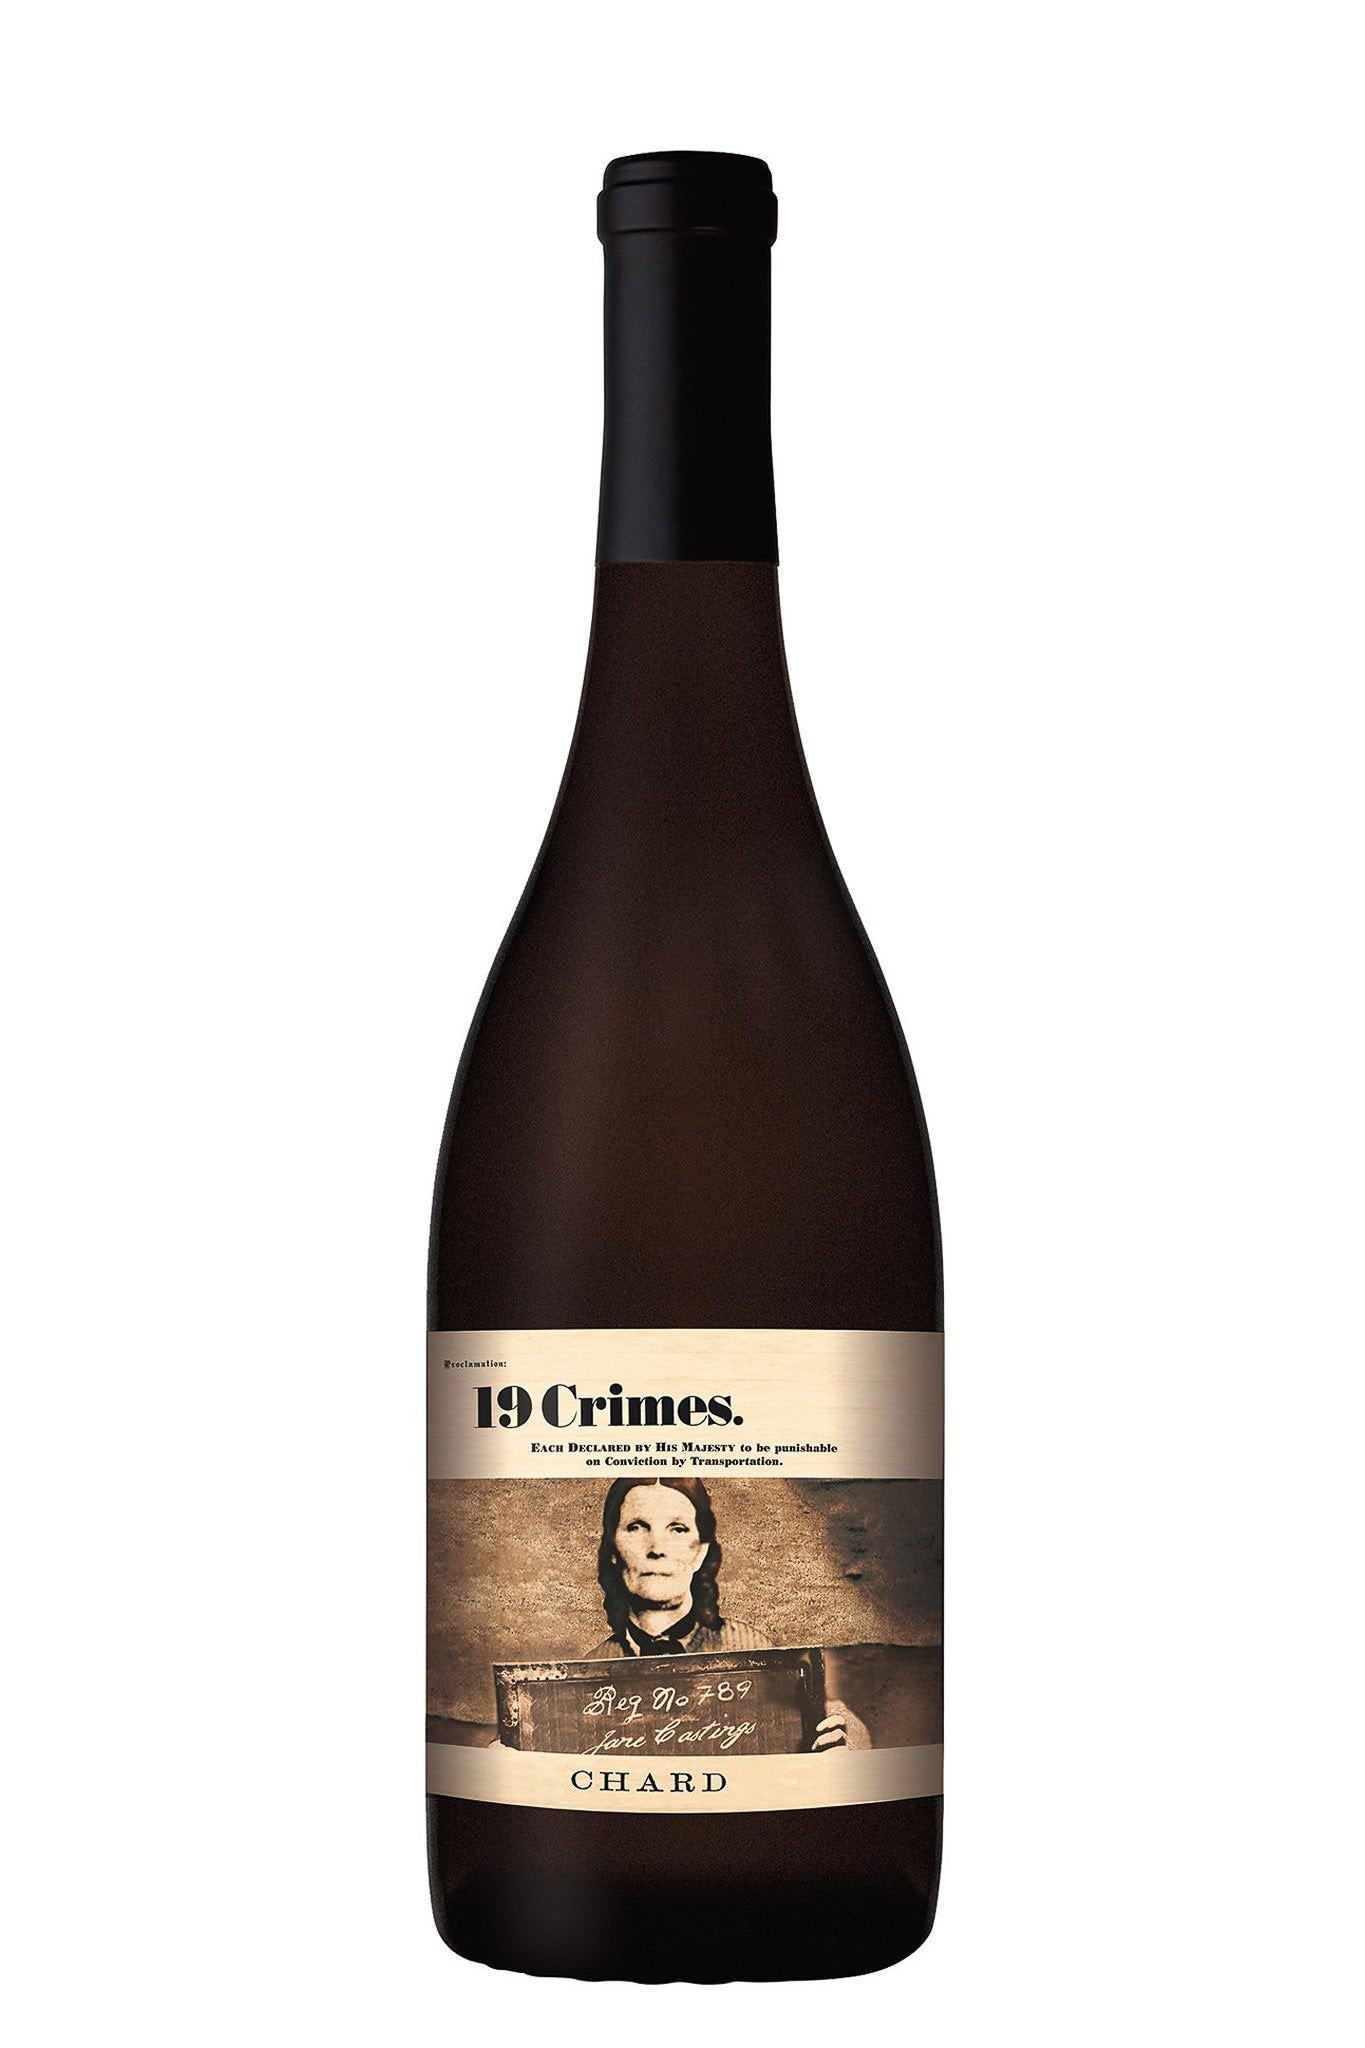 19 Crimes CHARD Chardonnay 2020 • Weisswein • Australien • Barossa Valley • 750 ml